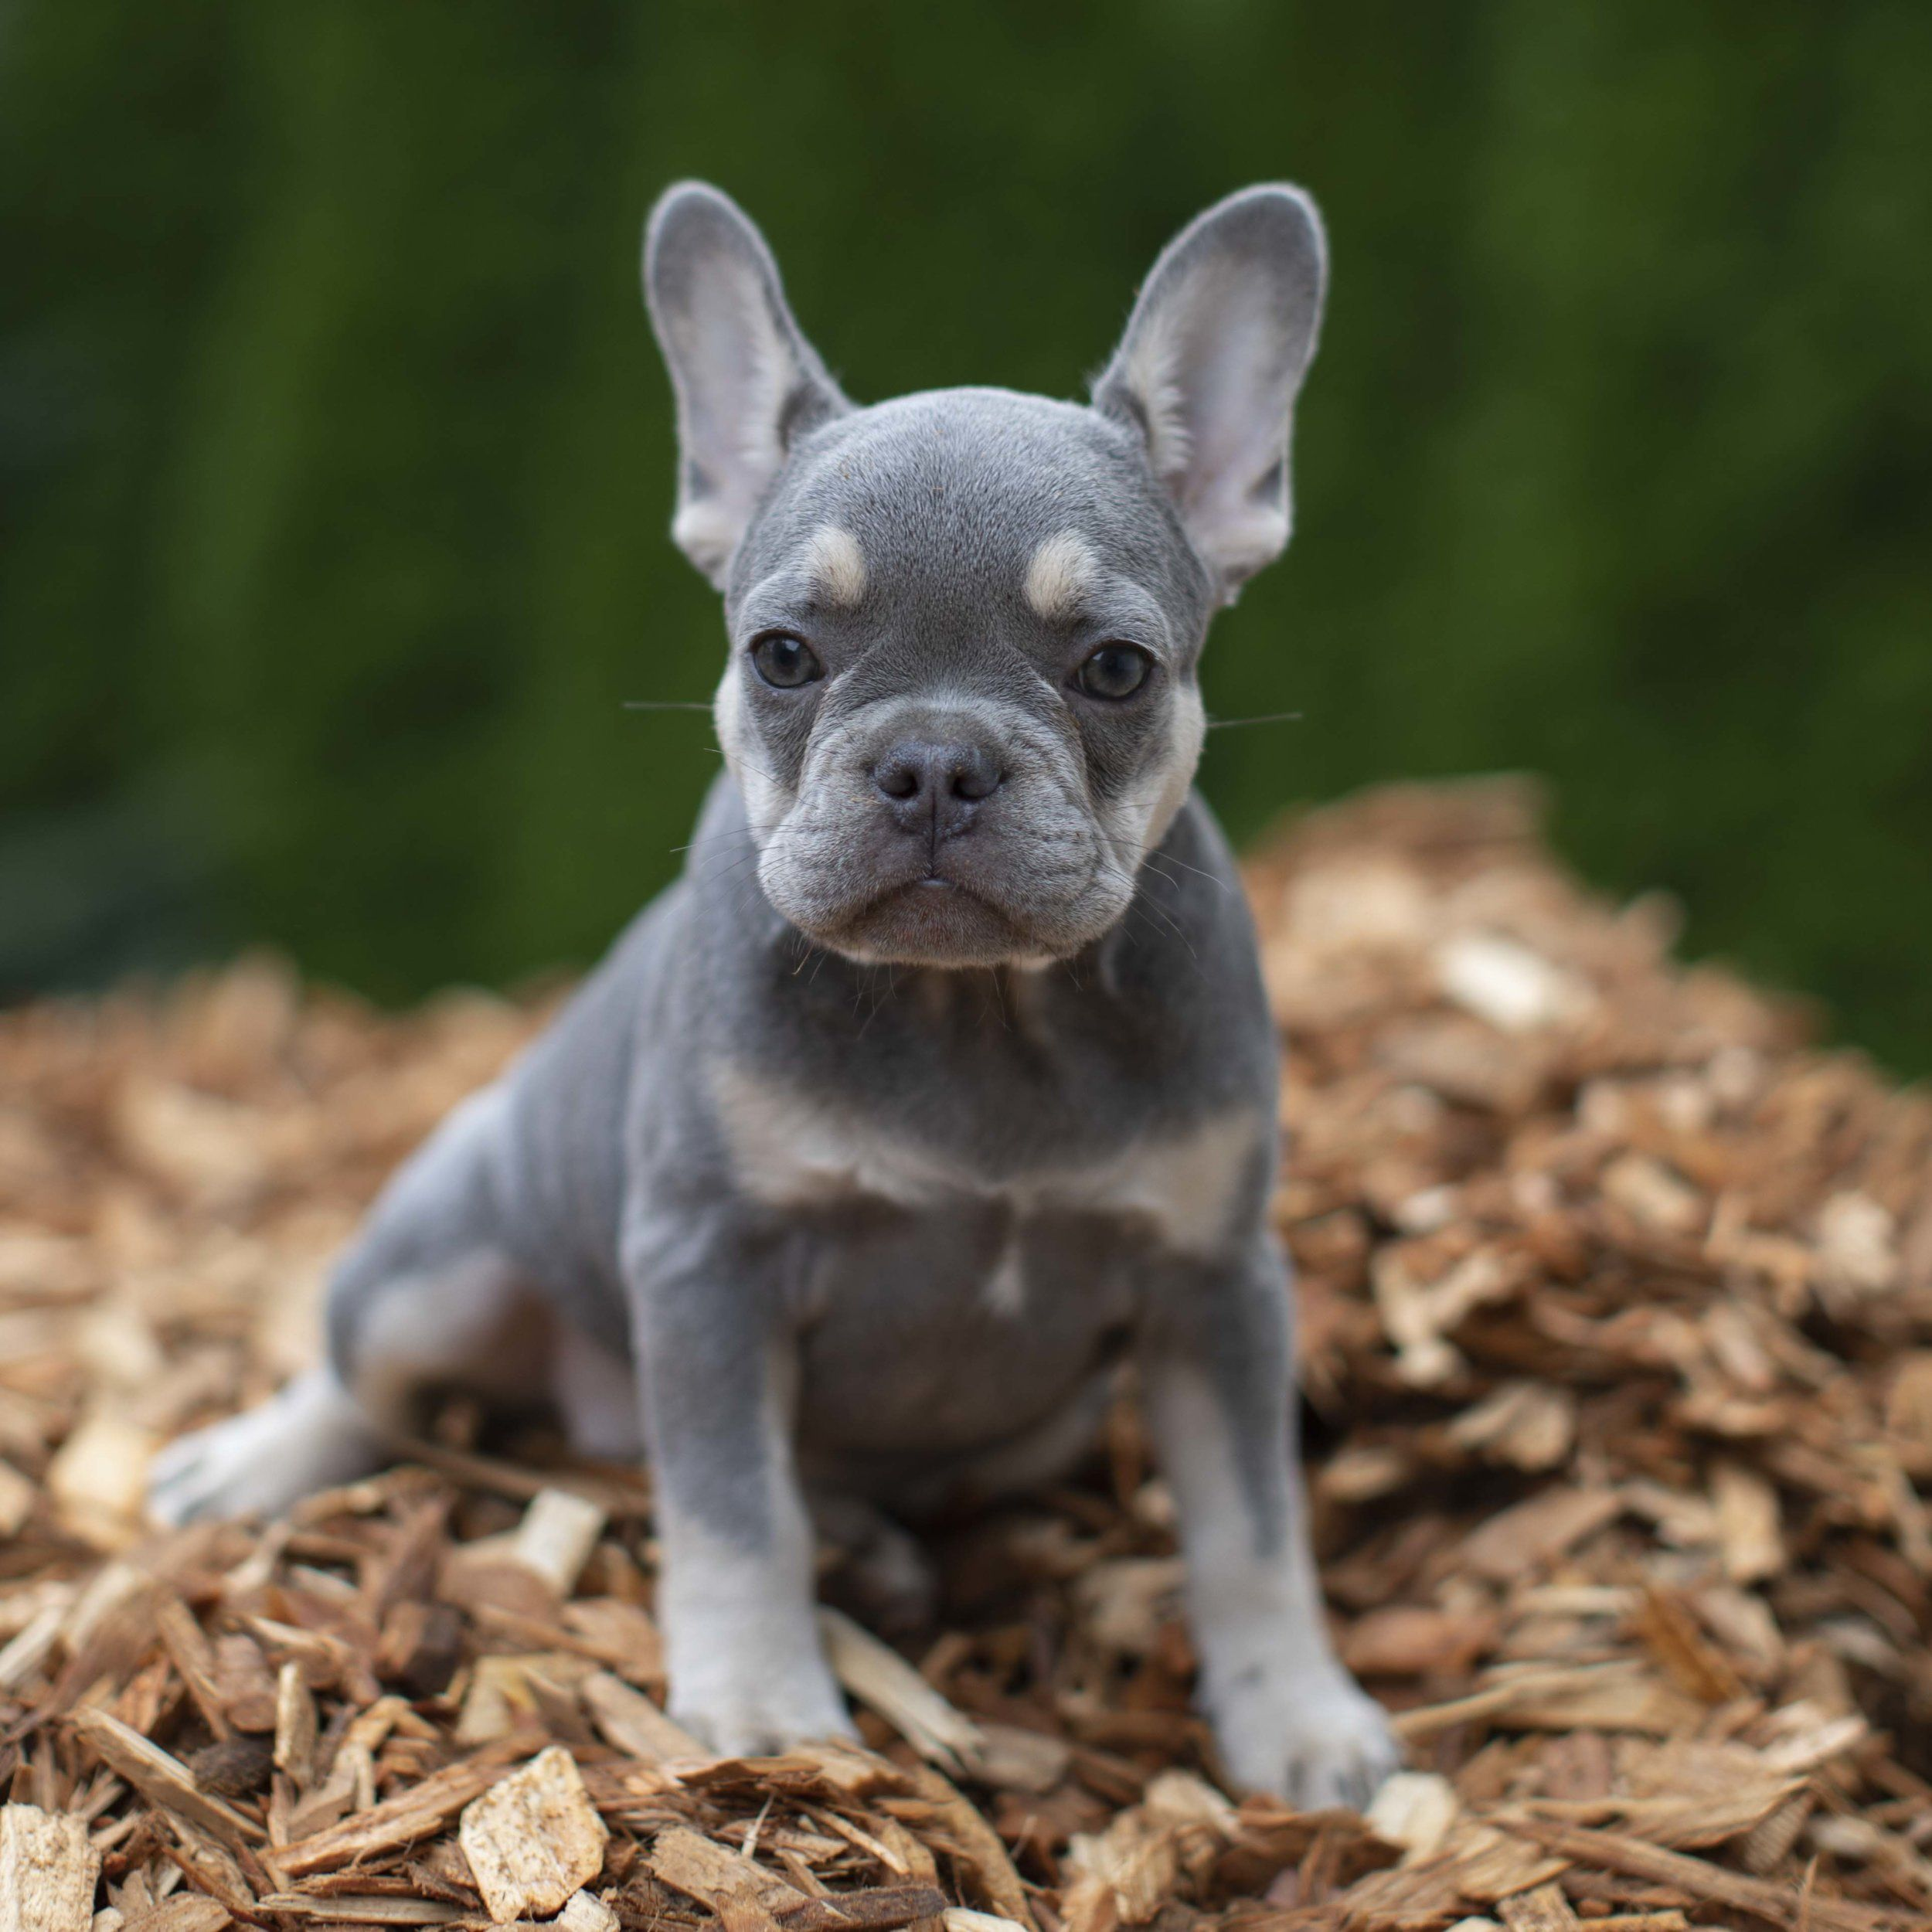 Reserved Lilac And Tan Female French Bulldog Puppy Looking For Her Forever Home French Bulldog Puppies White French Bulldog Puppies French Bulldog Puppy